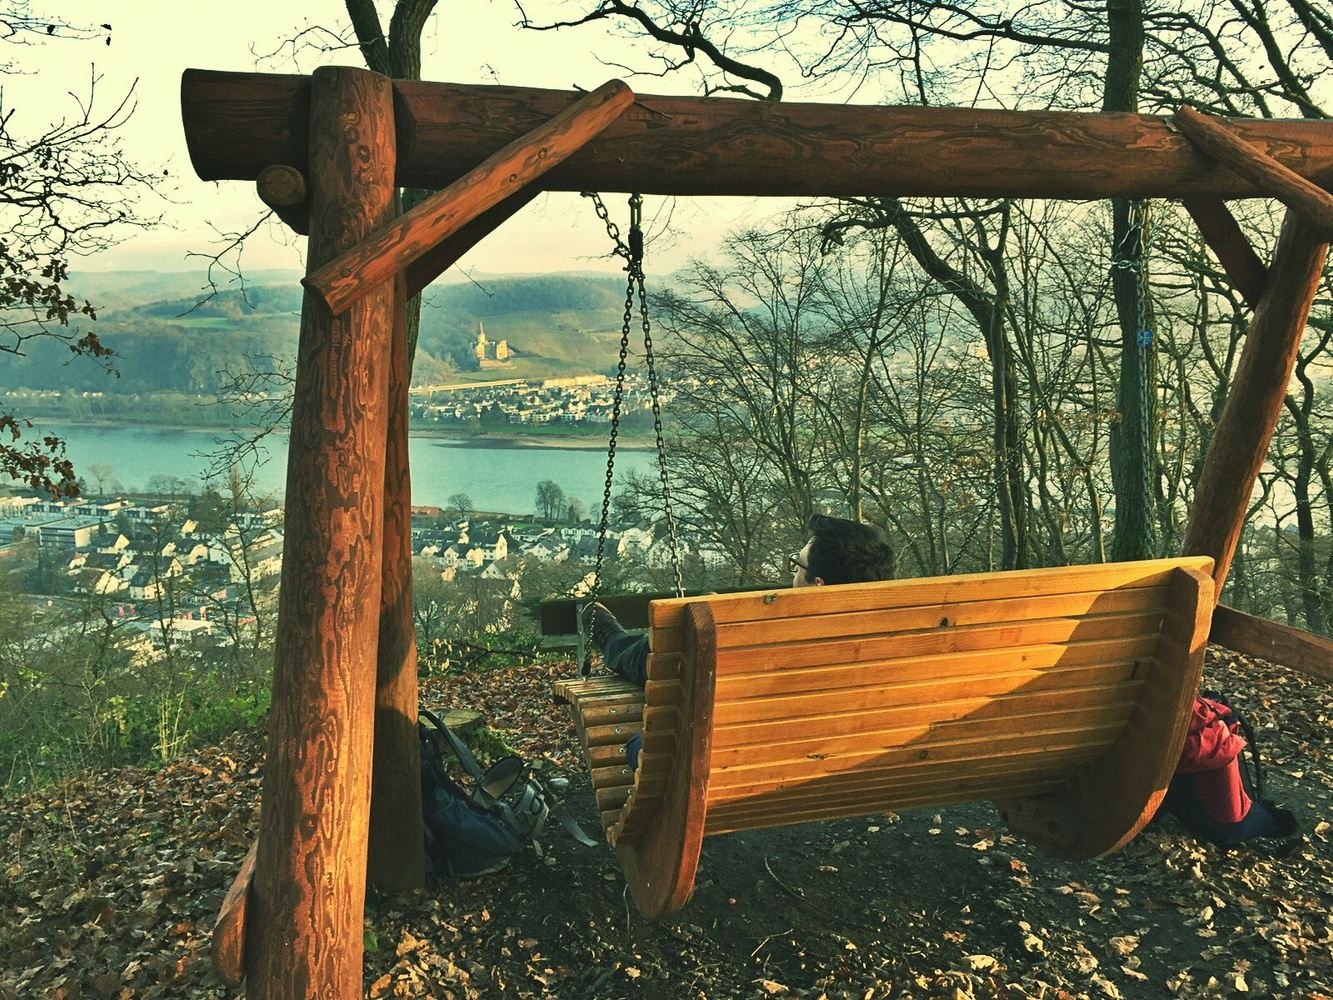 Hike, Relax & Reflect in the beautiful Eifel